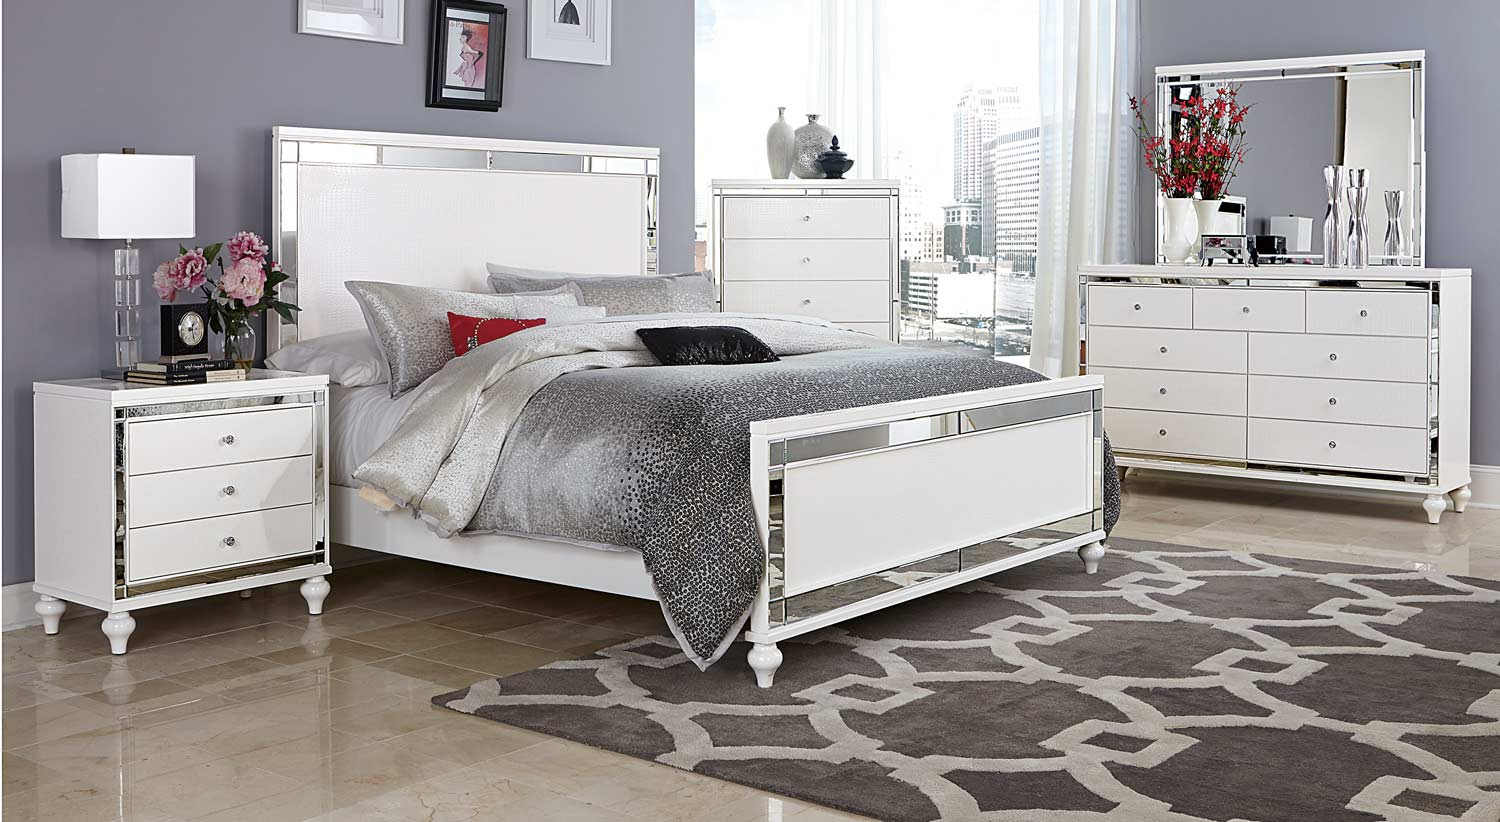 Homelegance Alonza 5pc Bright White King Bedroom Group Dallas TX ...